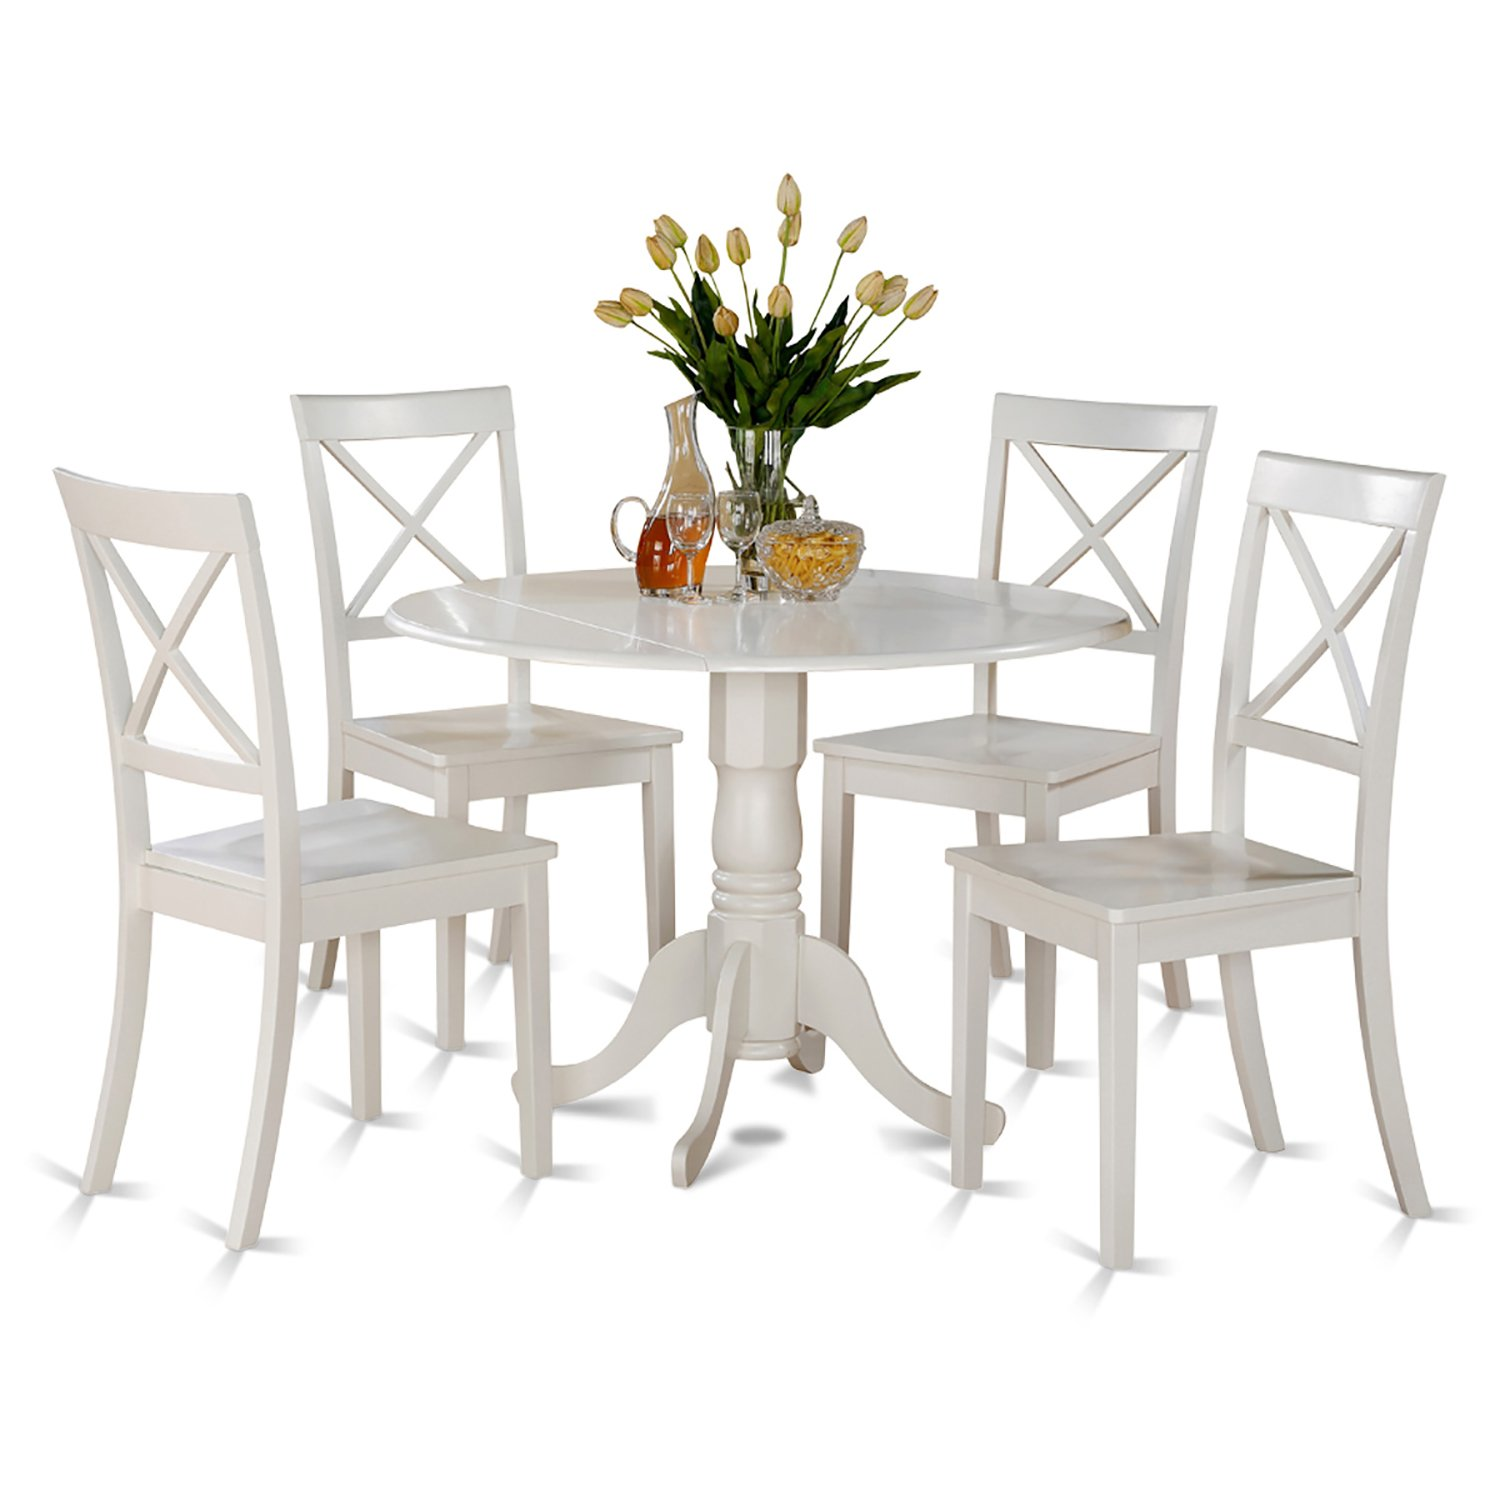 Small Dining Tables Sets: Small Round Table And Furniture Dining Set For 4 With